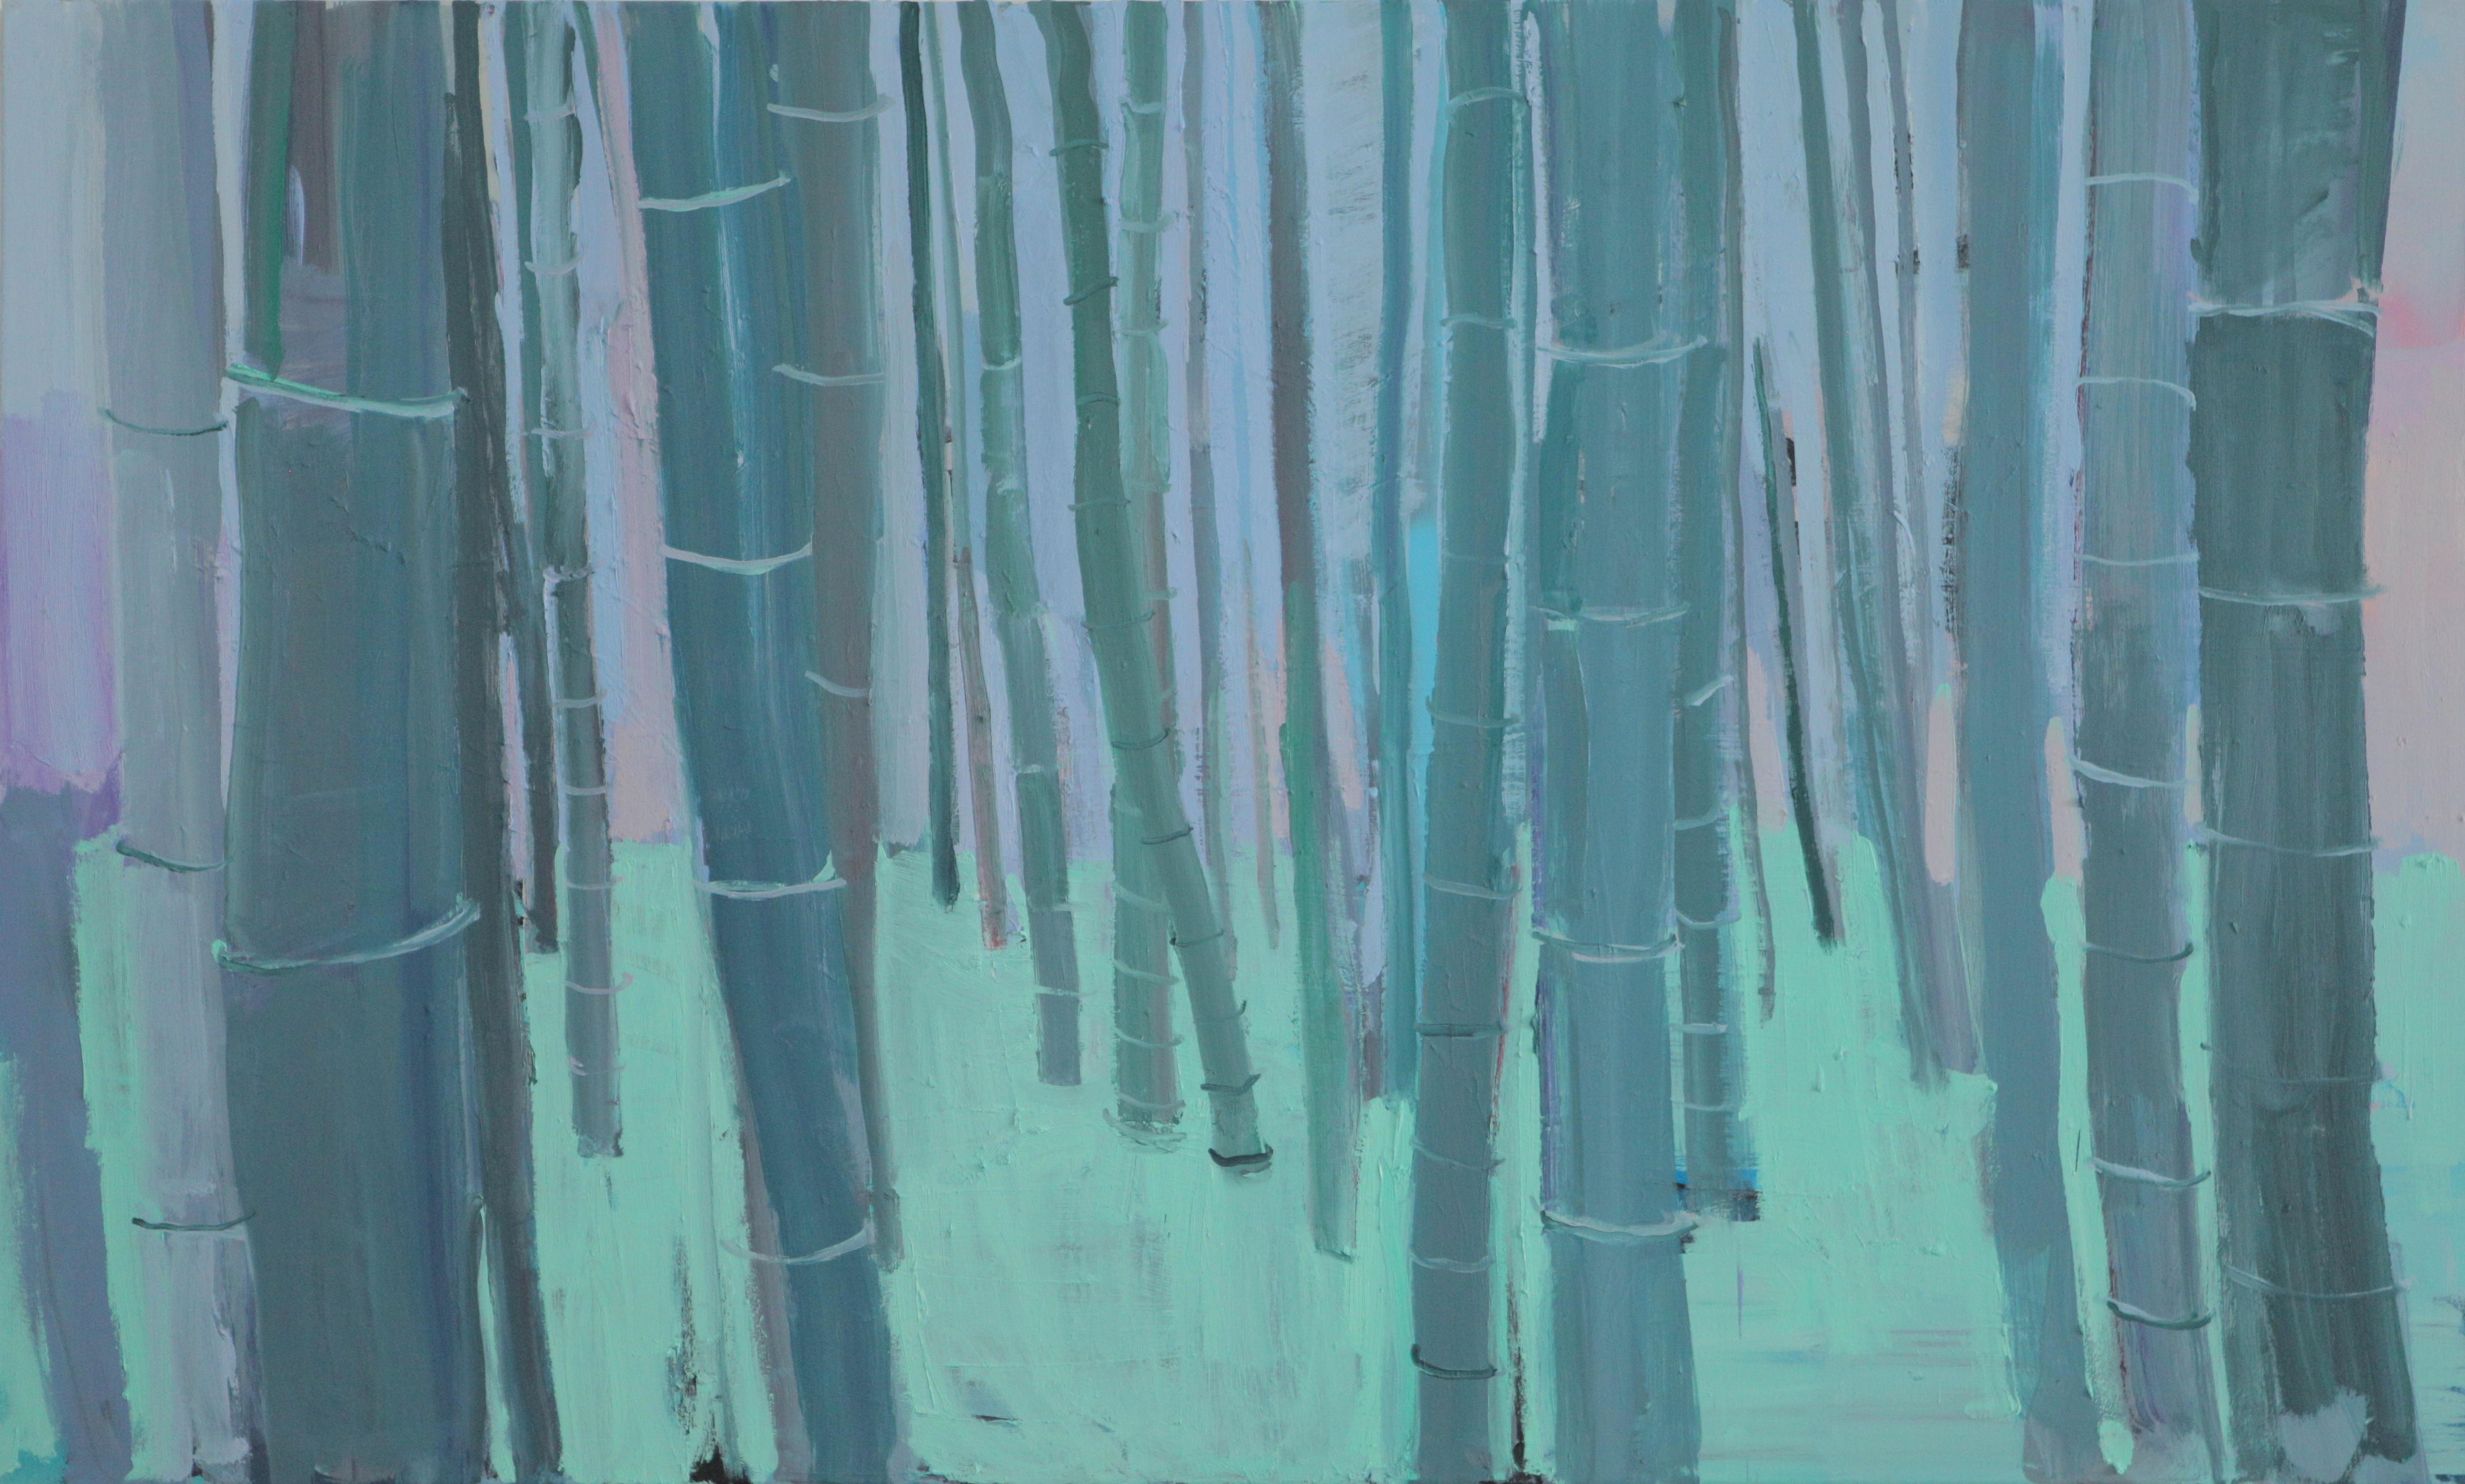 japanese bamboo forest | lisa ballard